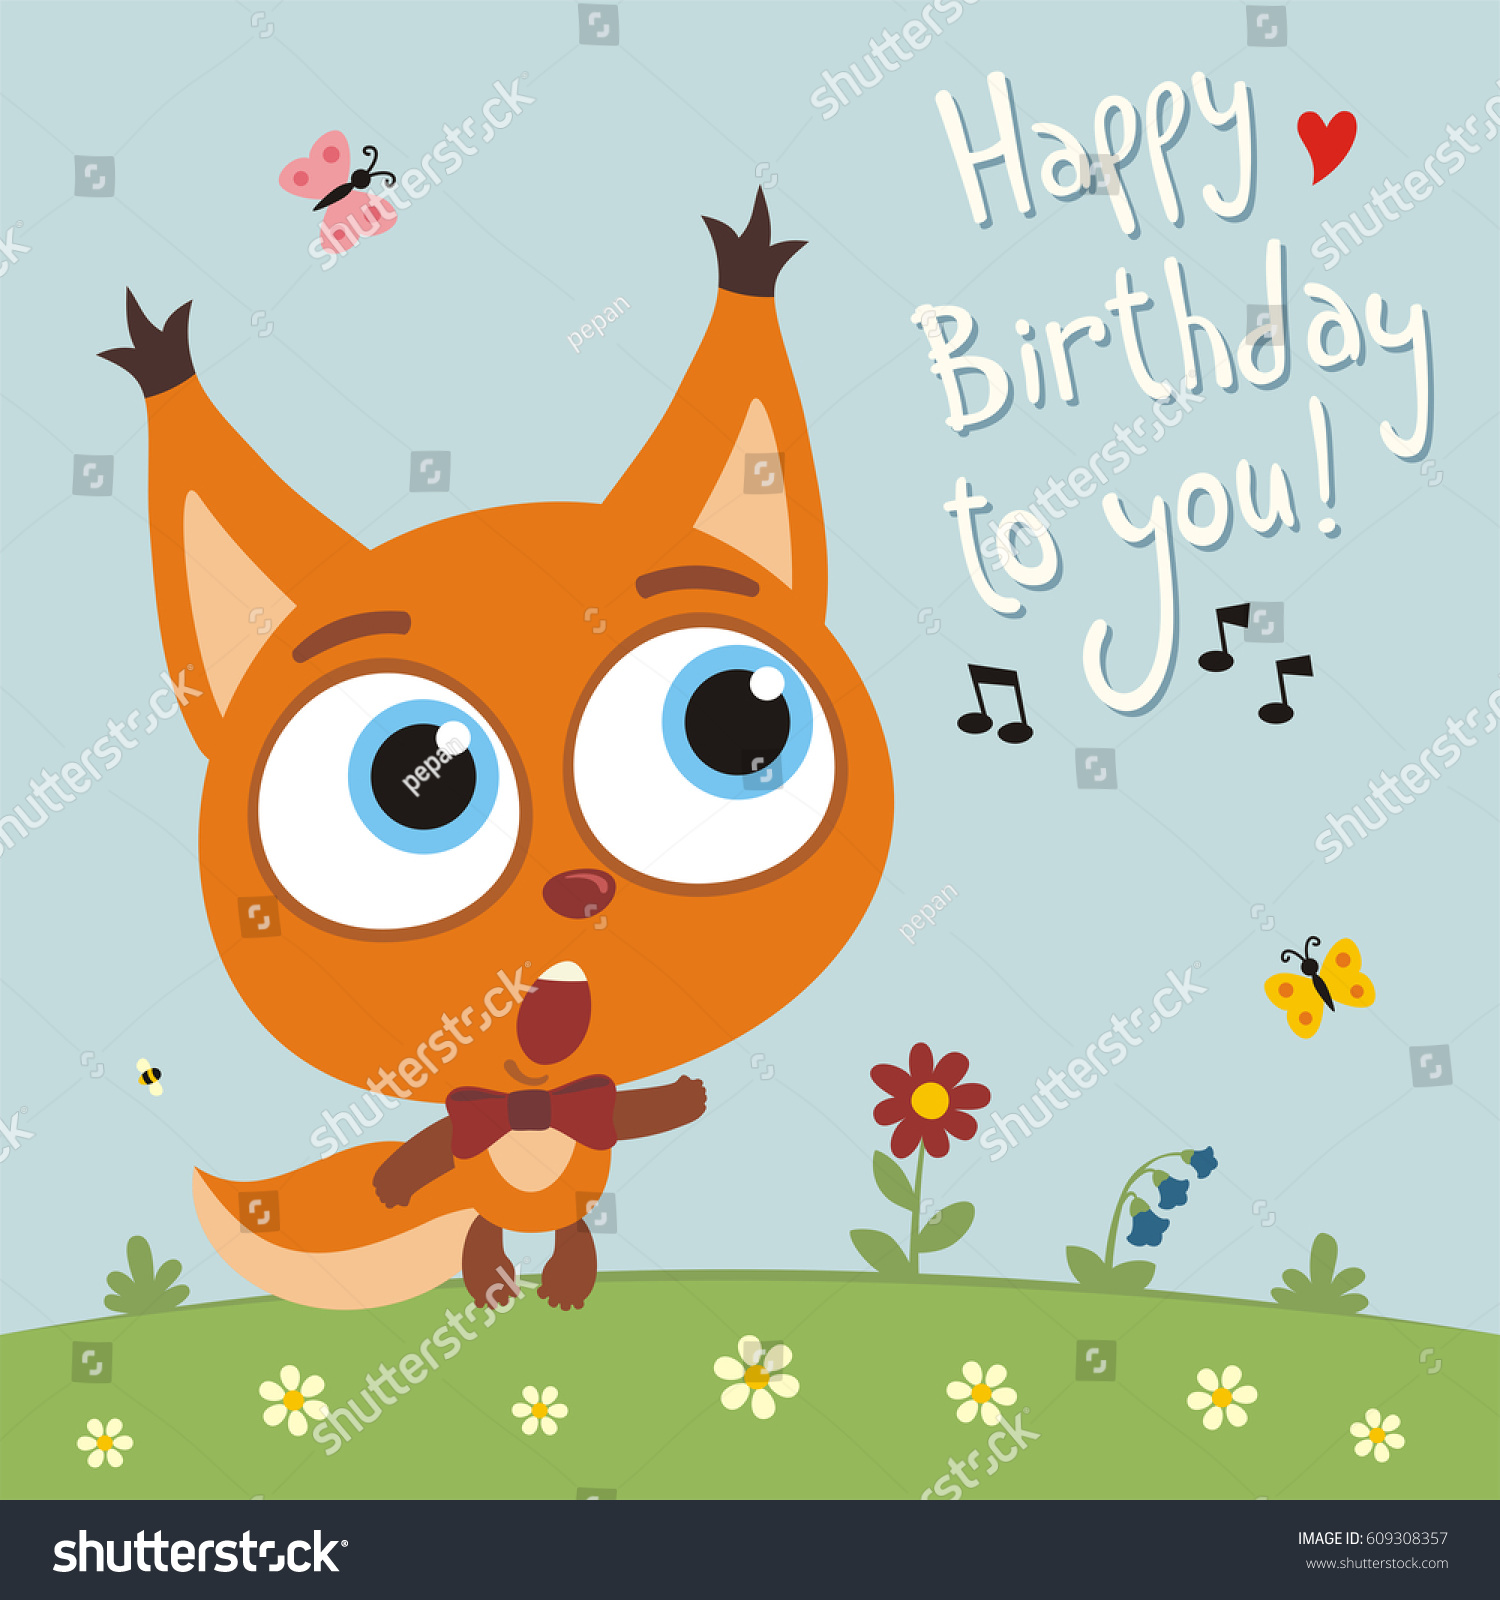 Funny squirrel sings song happy birthday stock vector royalty free funny squirrel sings song happy birthday to you greeting card m4hsunfo